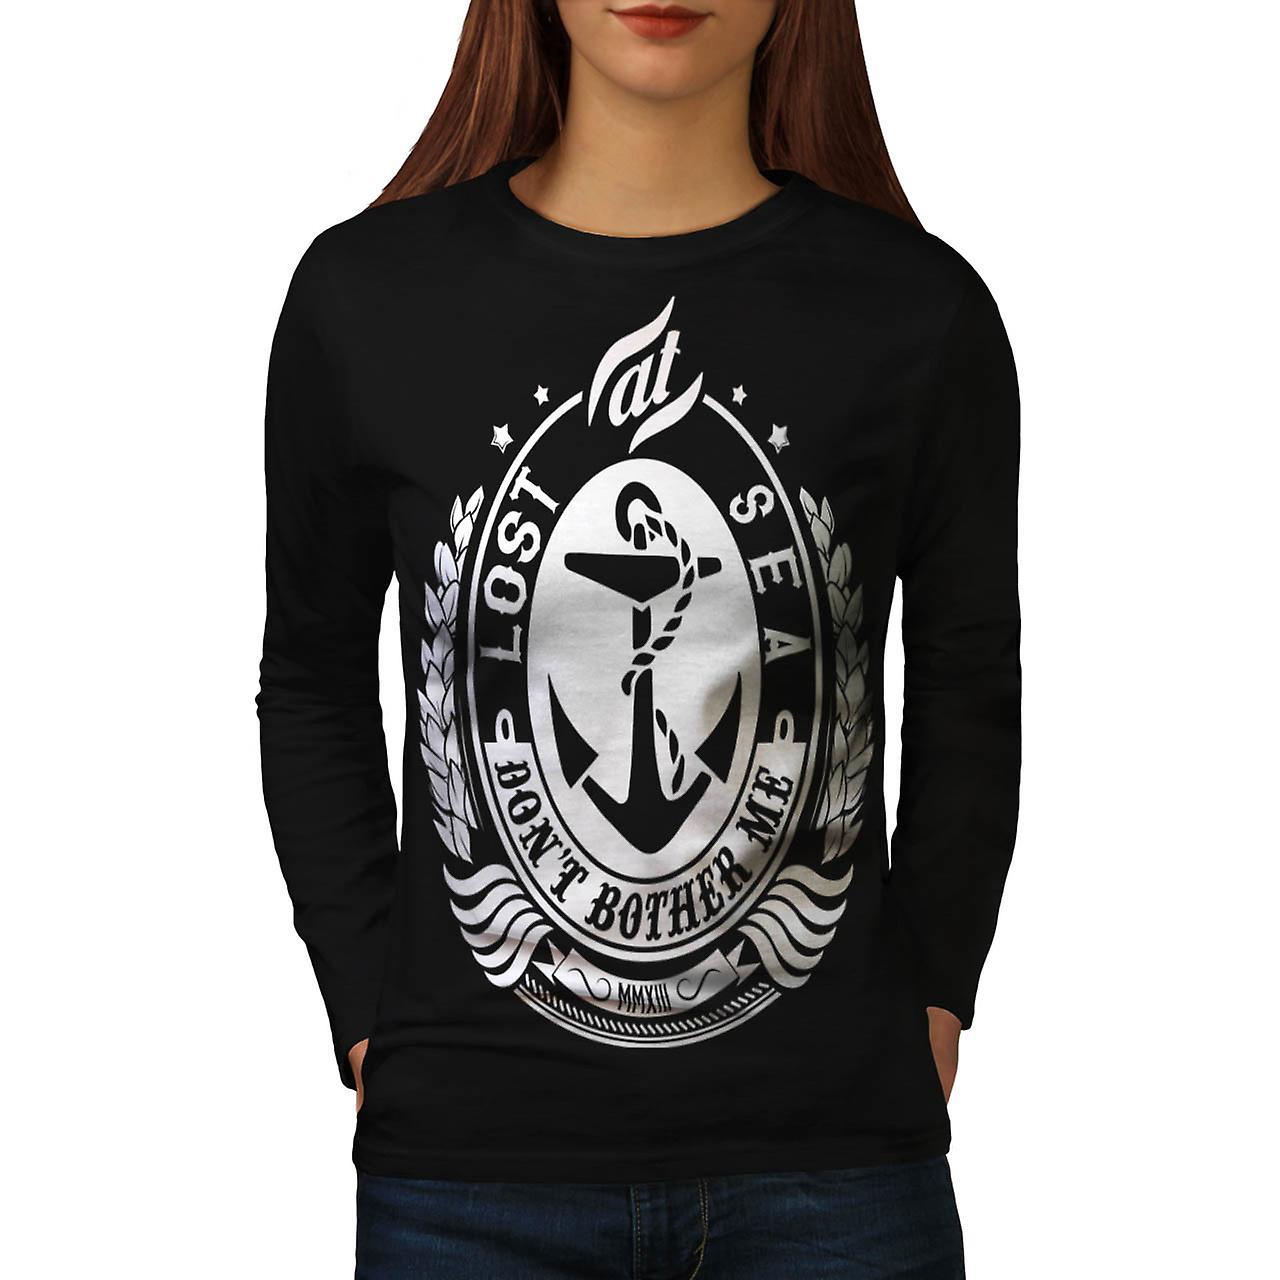 Lost At Sea Boat Ship Bother Me Women Black Long Sleeve T-shirt | Wellcoda